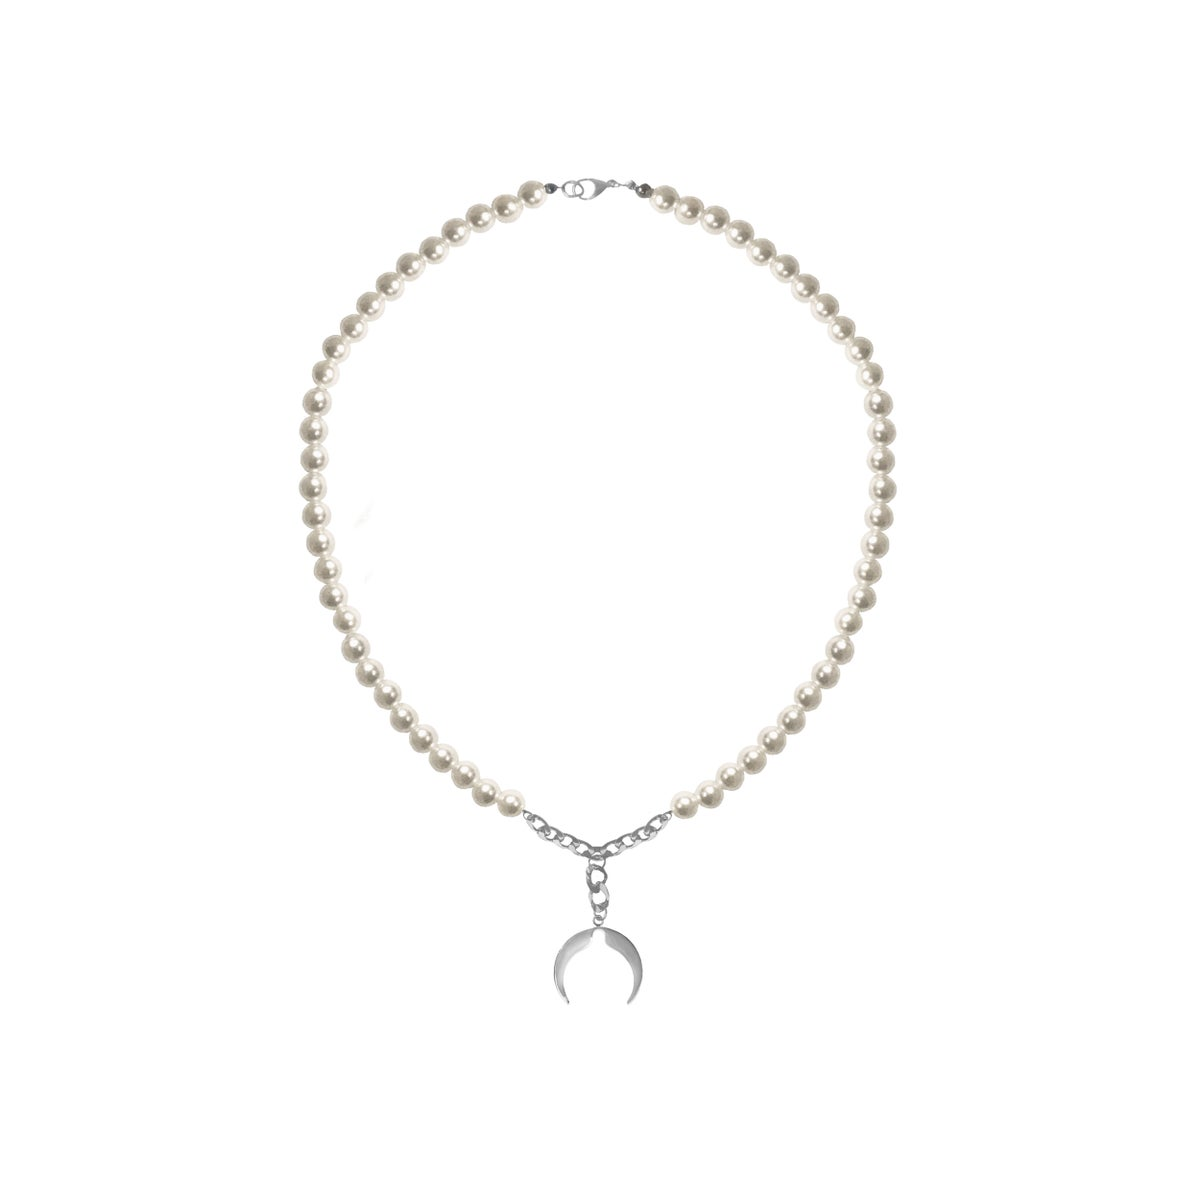 Image of SALES: PEARL MOON LOGO NECKLACE (unisex)